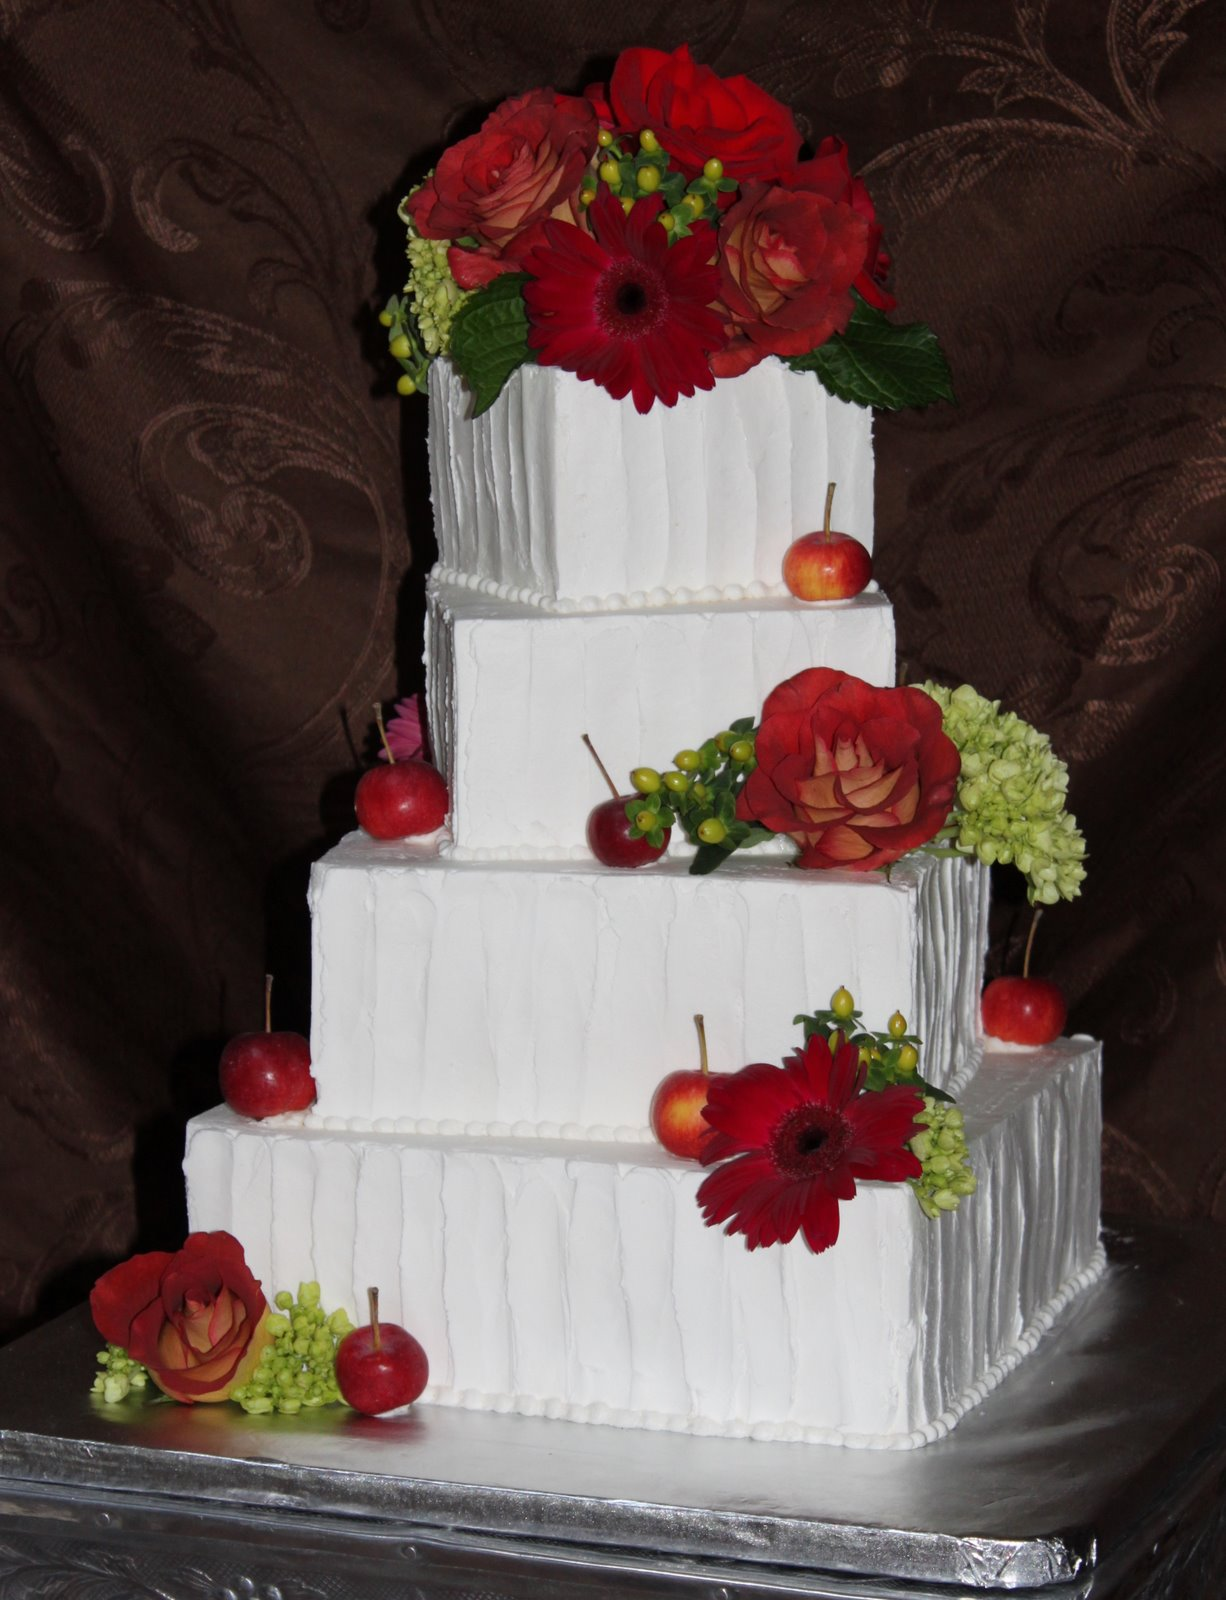 Zilpha s blog Fall Wedding Cake Posted by